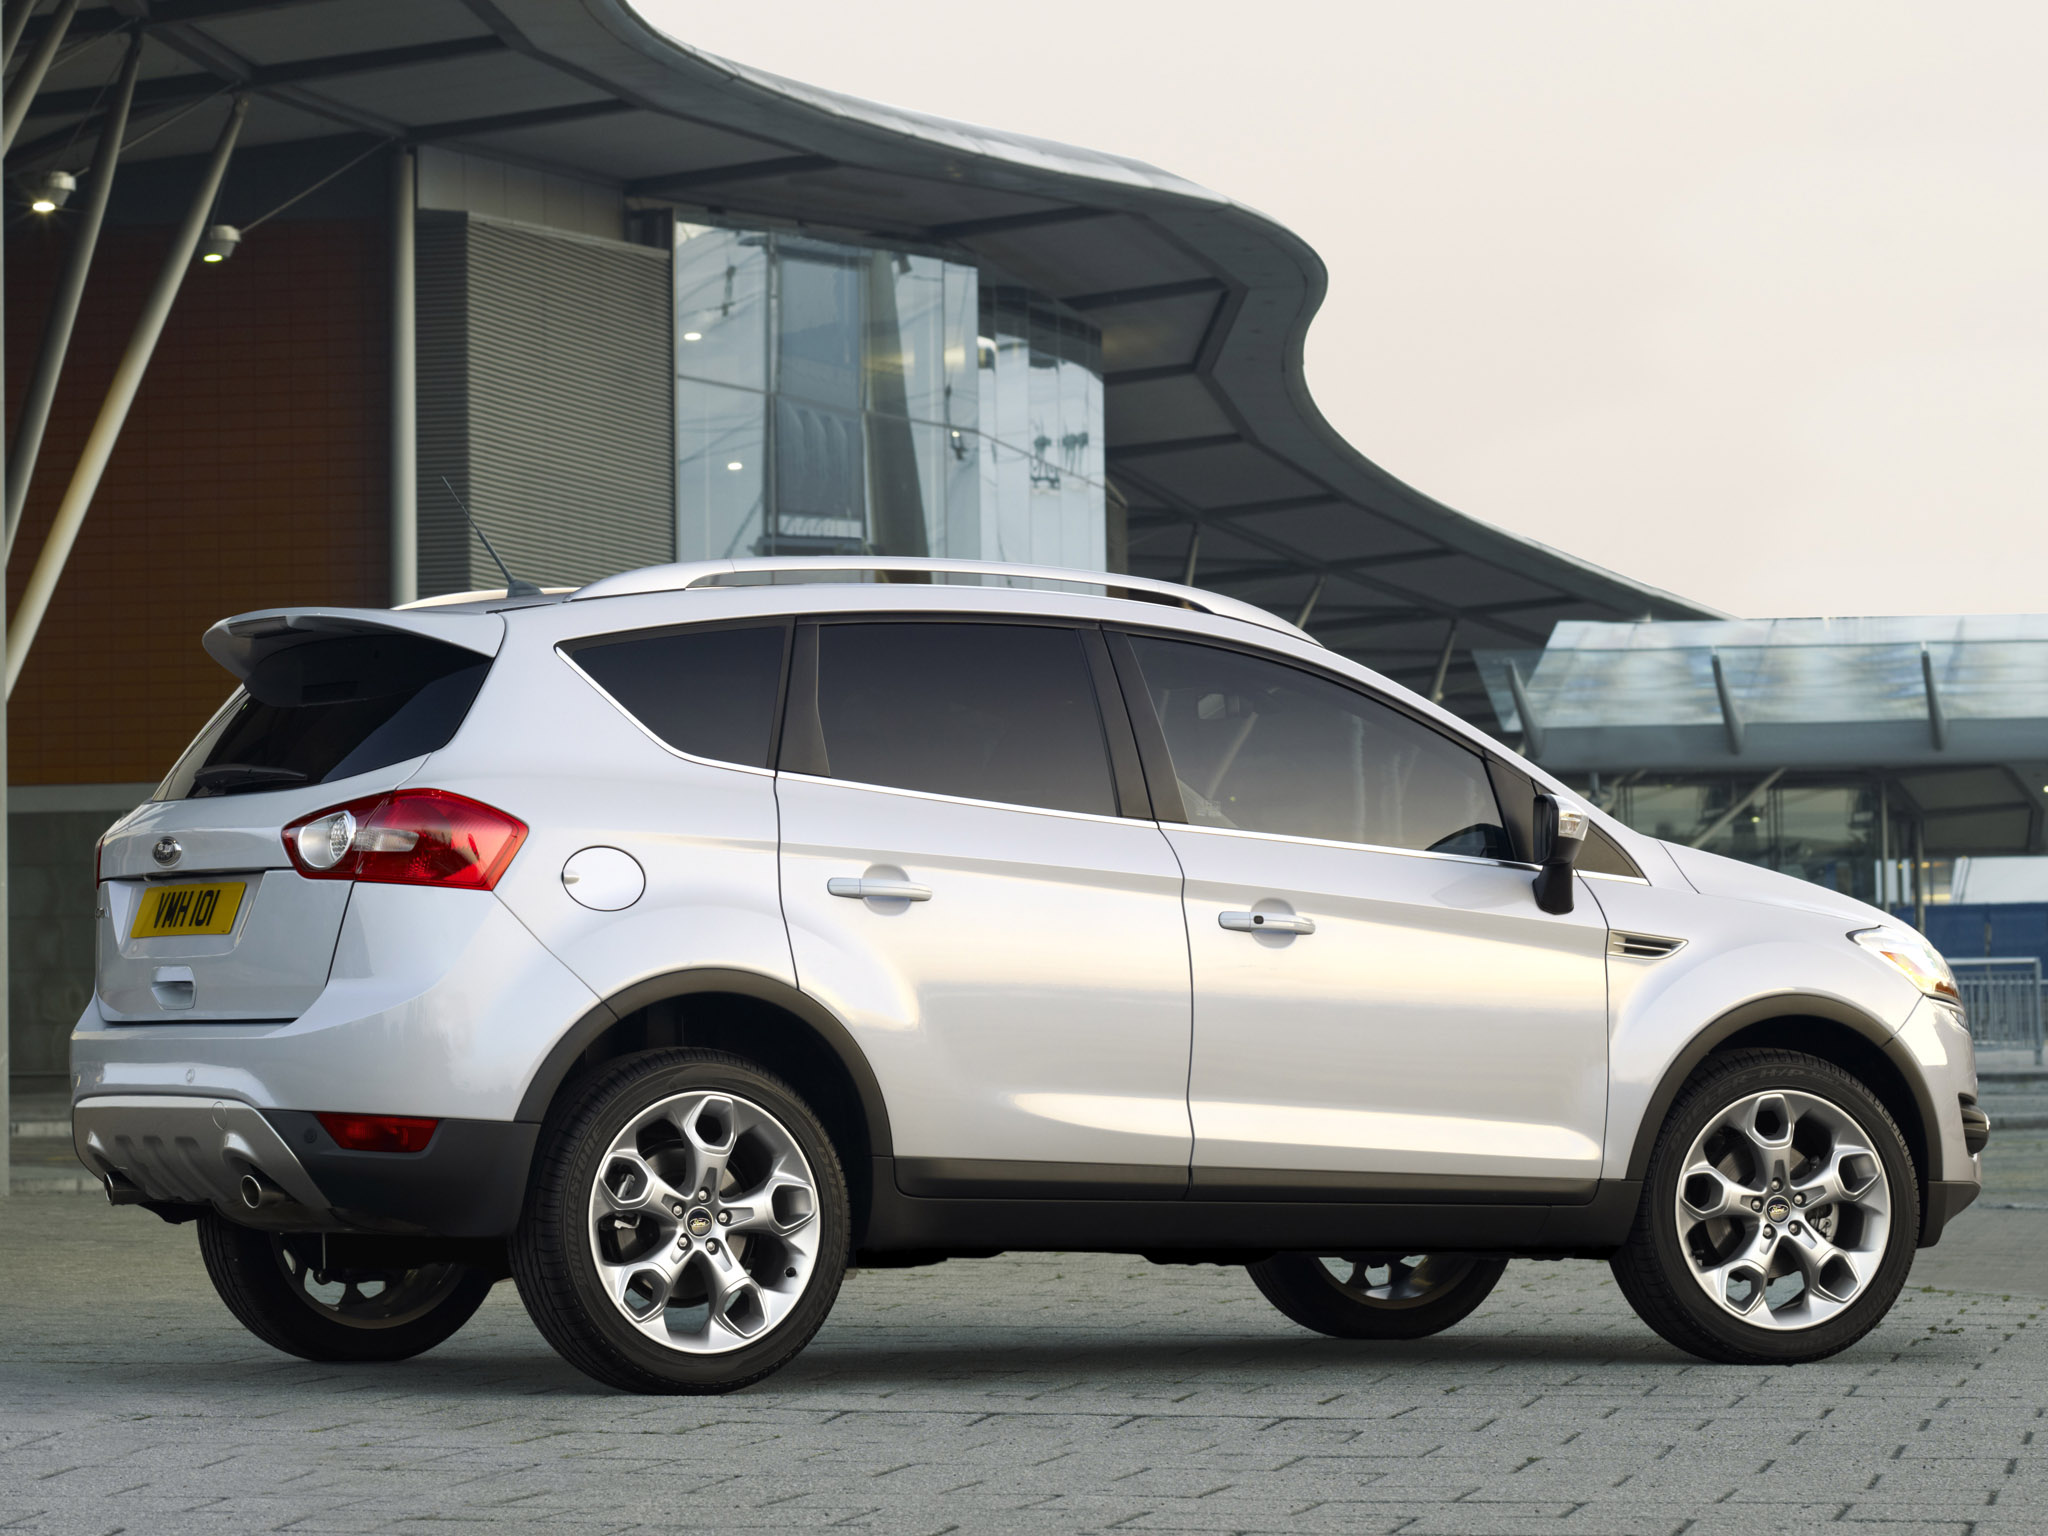 ford kuga titanium s 2011 ford kuga titanium s 2011 photo 07 car in pictures car photo gallery. Black Bedroom Furniture Sets. Home Design Ideas